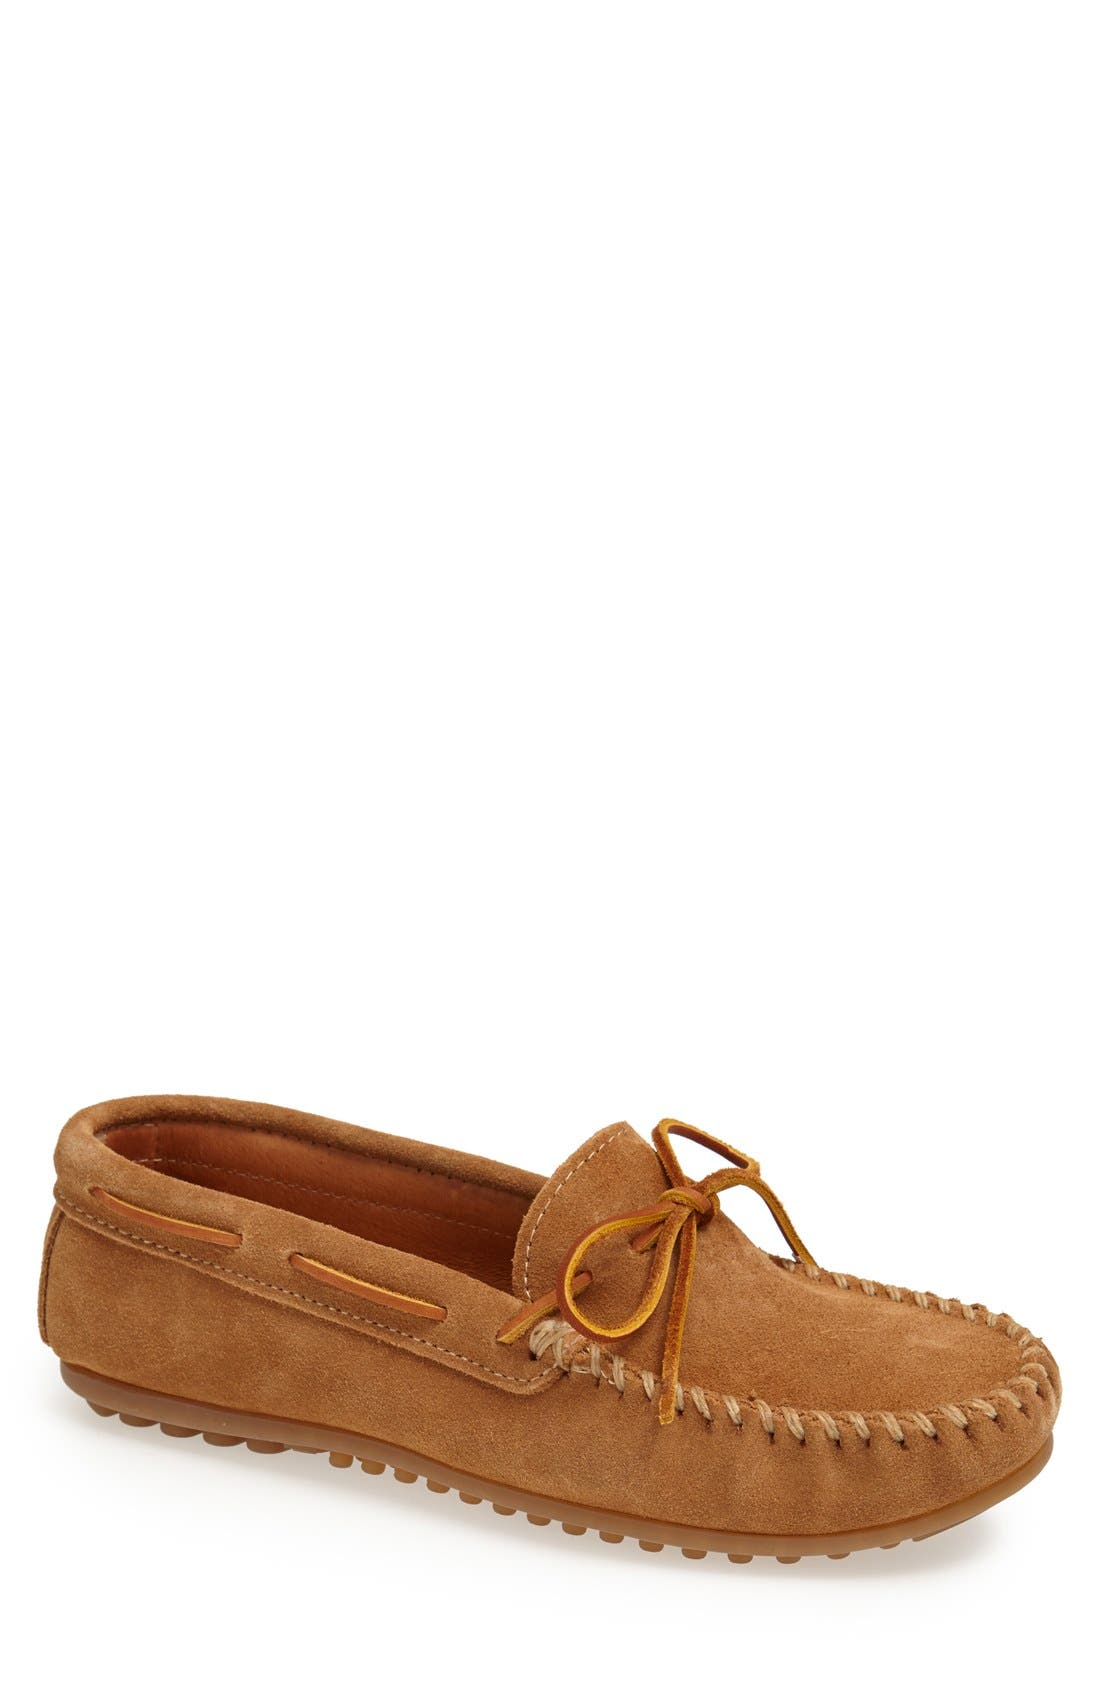 Suede Driving Shoe,                             Main thumbnail 1, color,                             TAUPE